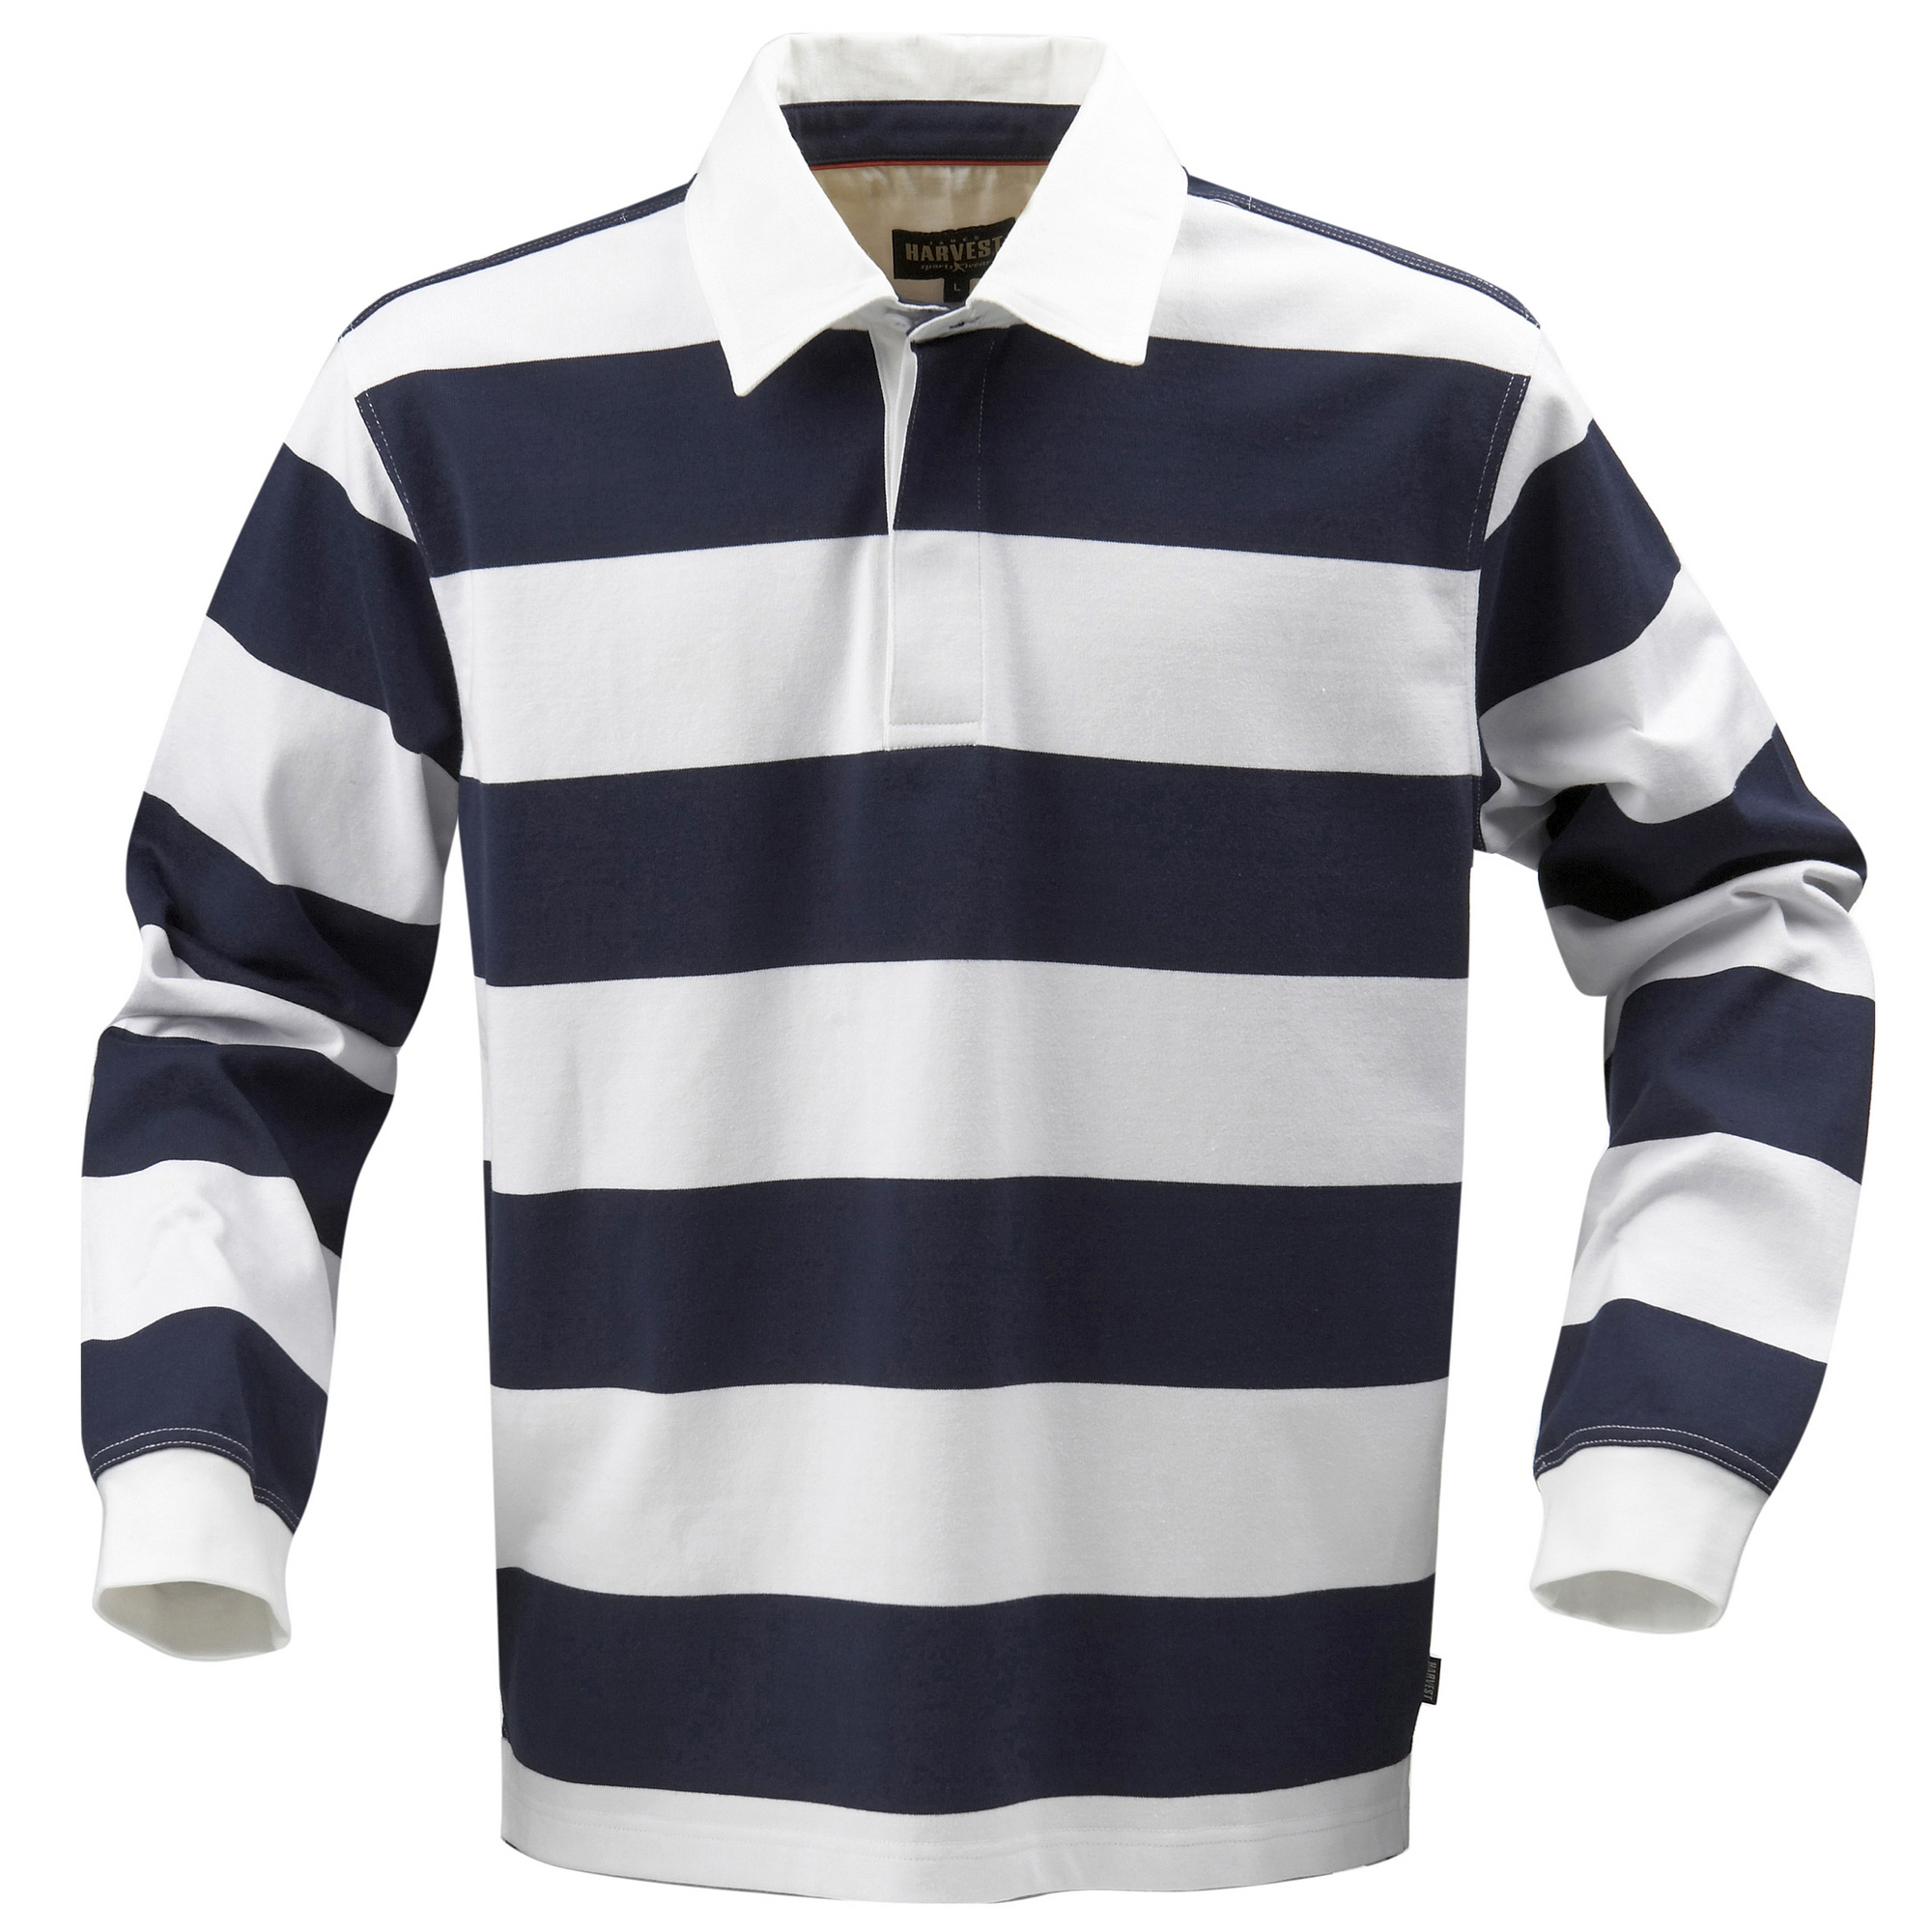 Harvest Lakeport Mens Rugby Sports Plain Cotton Long